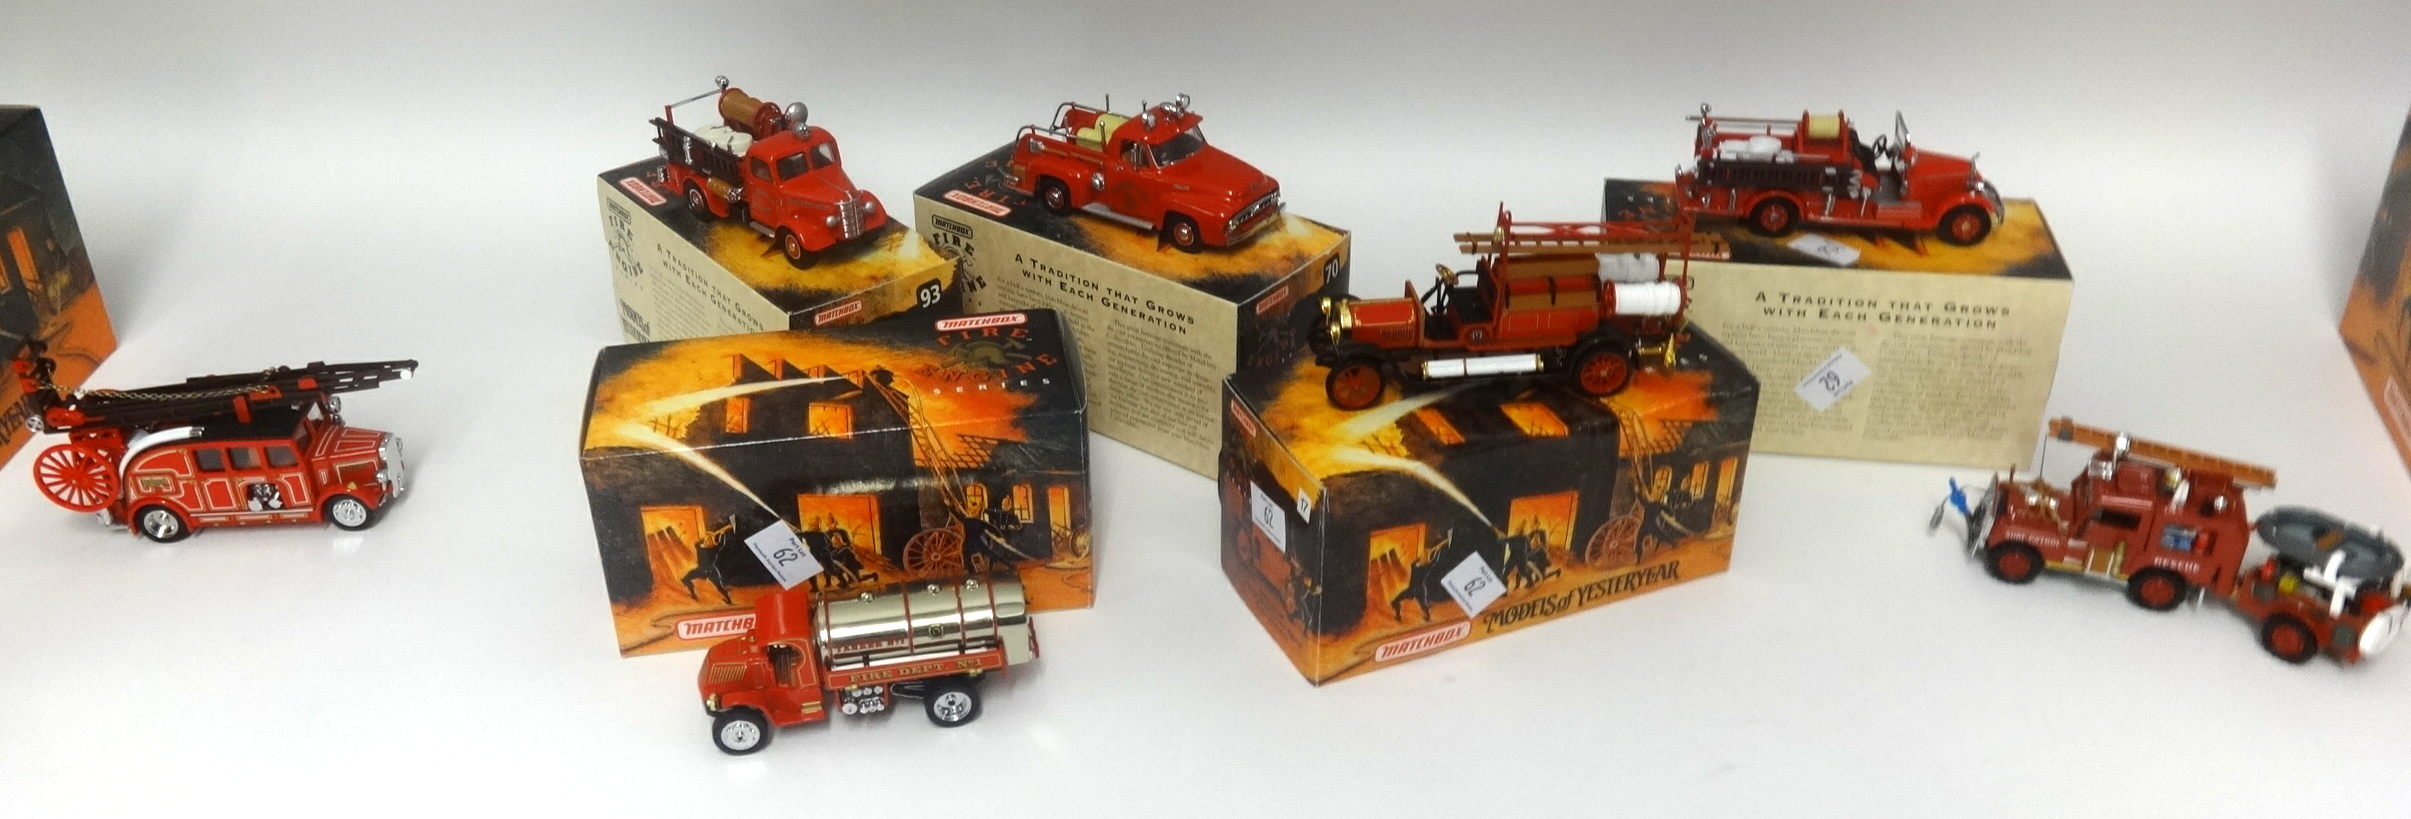 Lot 062 - A collection of Matchbox Fire Engine Series. Approx 40 including some special edition models.